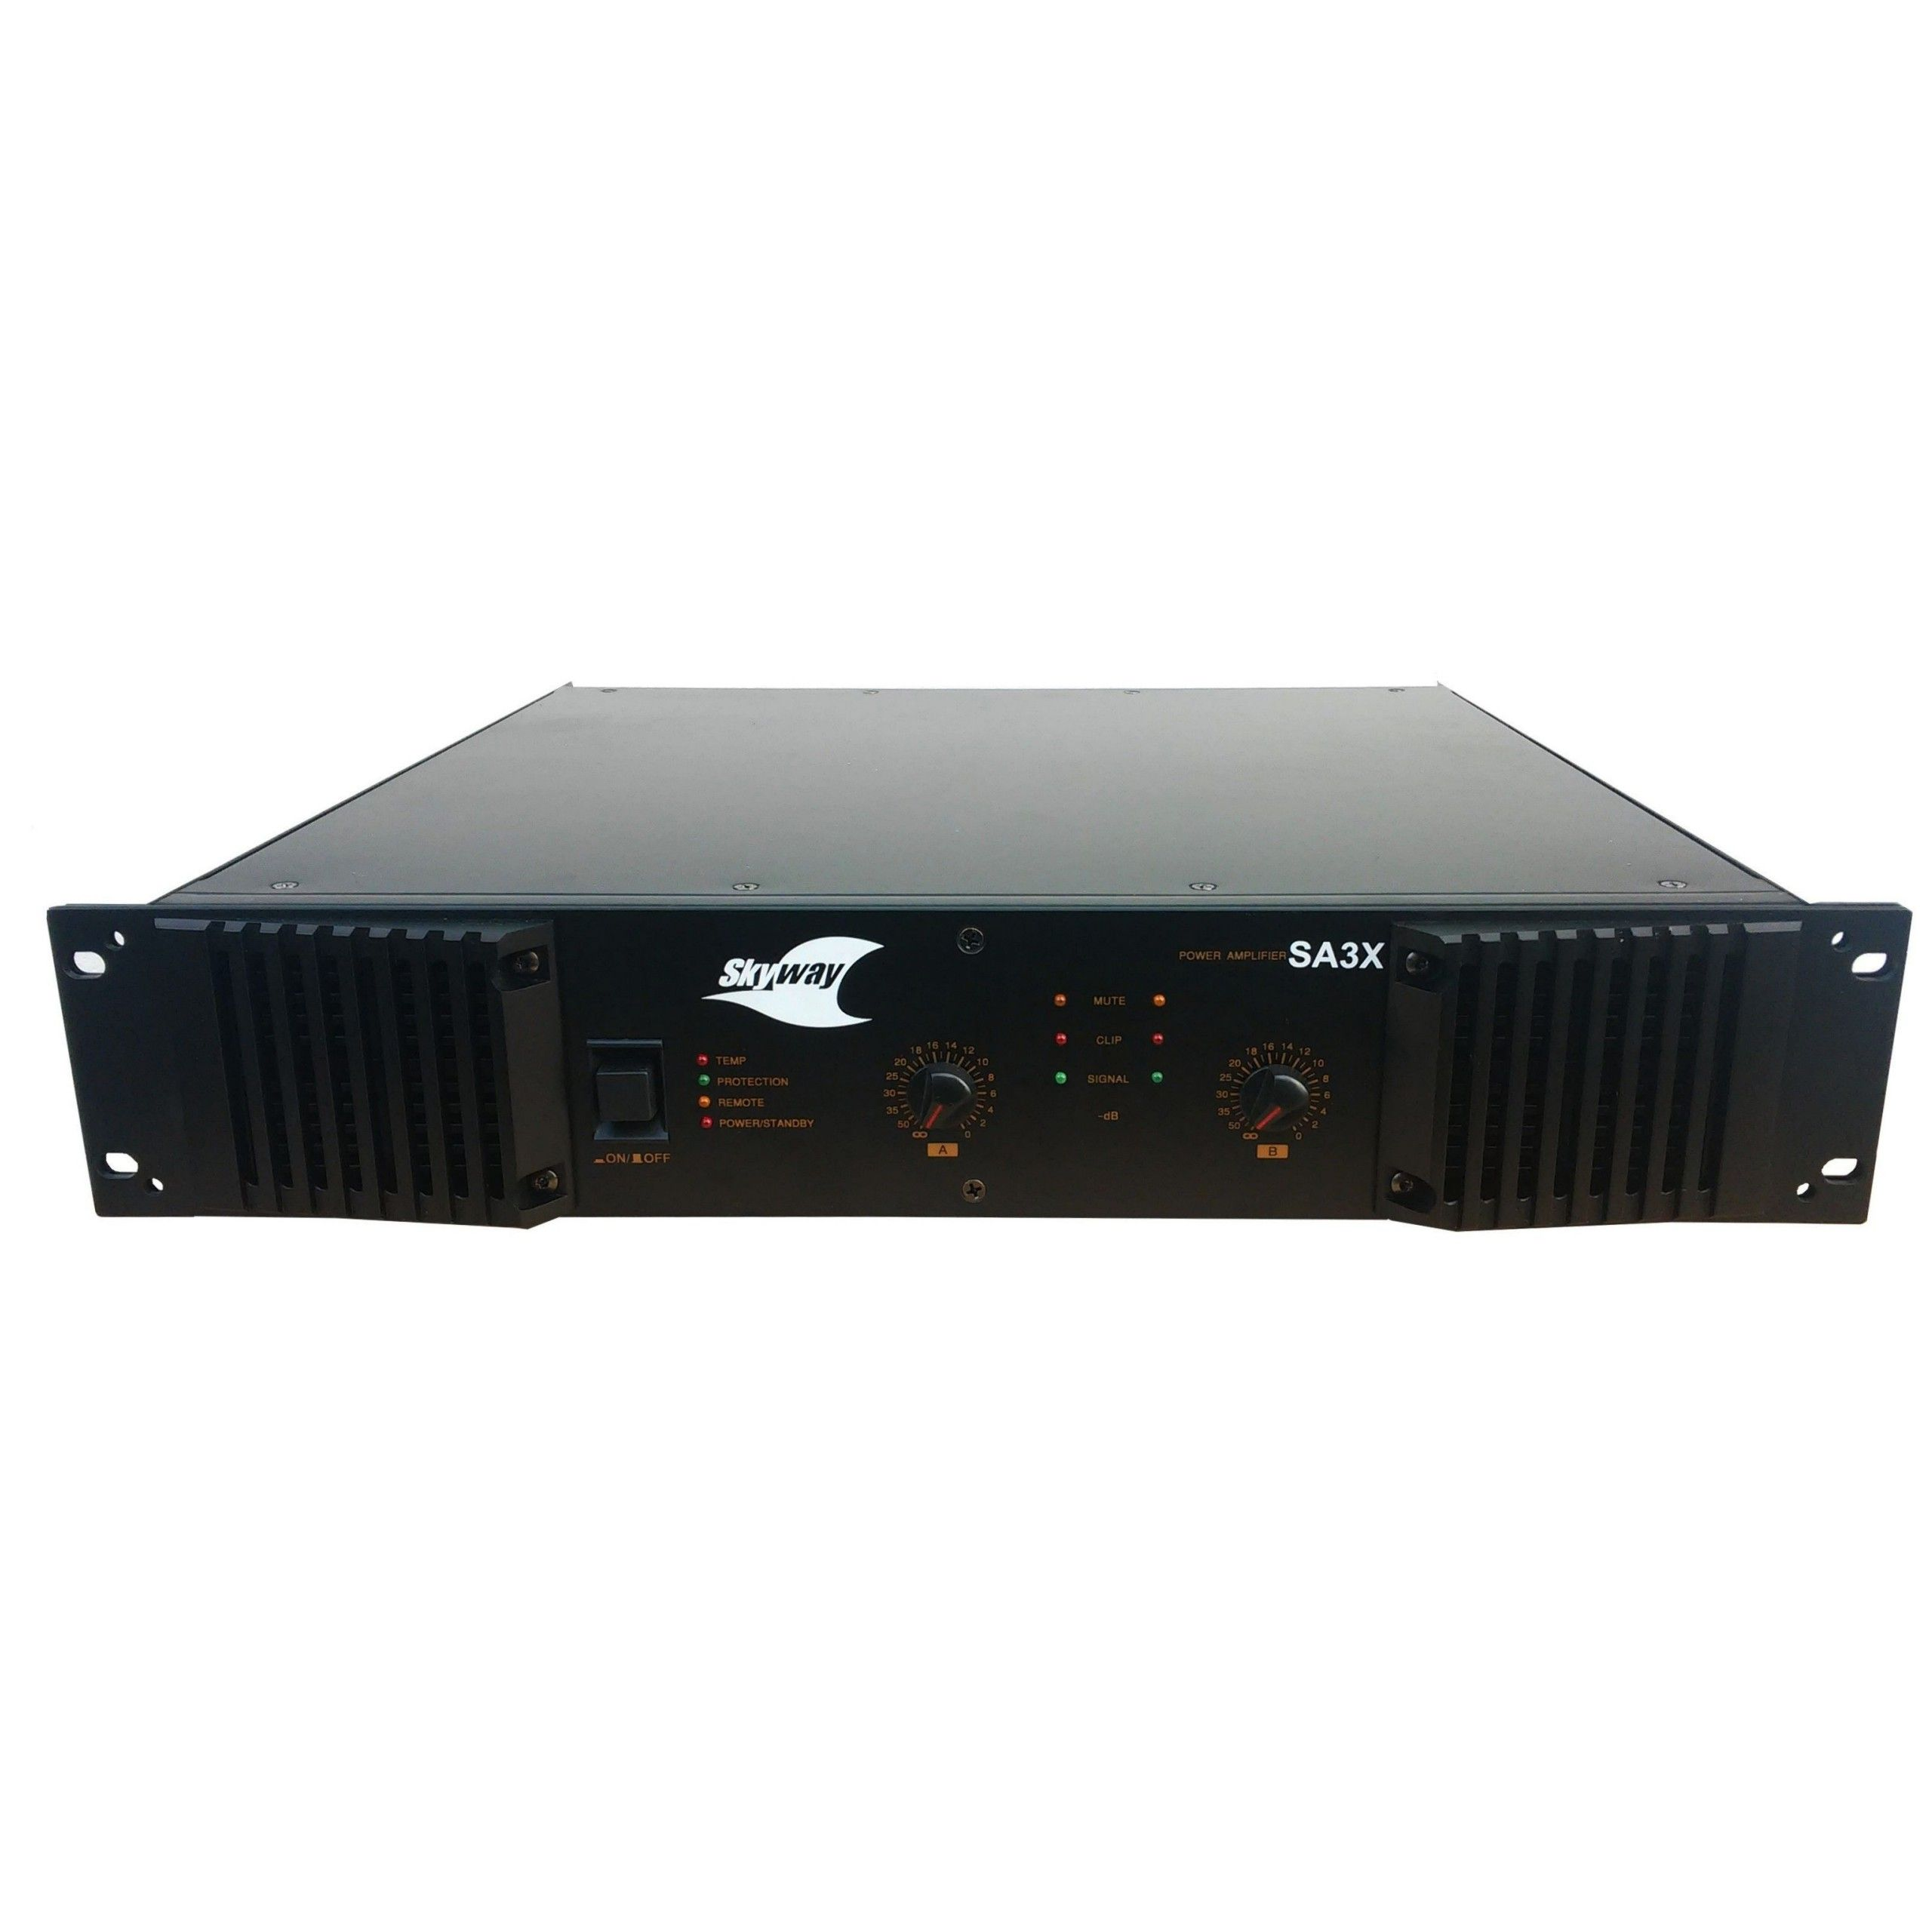 SA3X 2x550W / 4 + Crossover Power Tip Amplifier